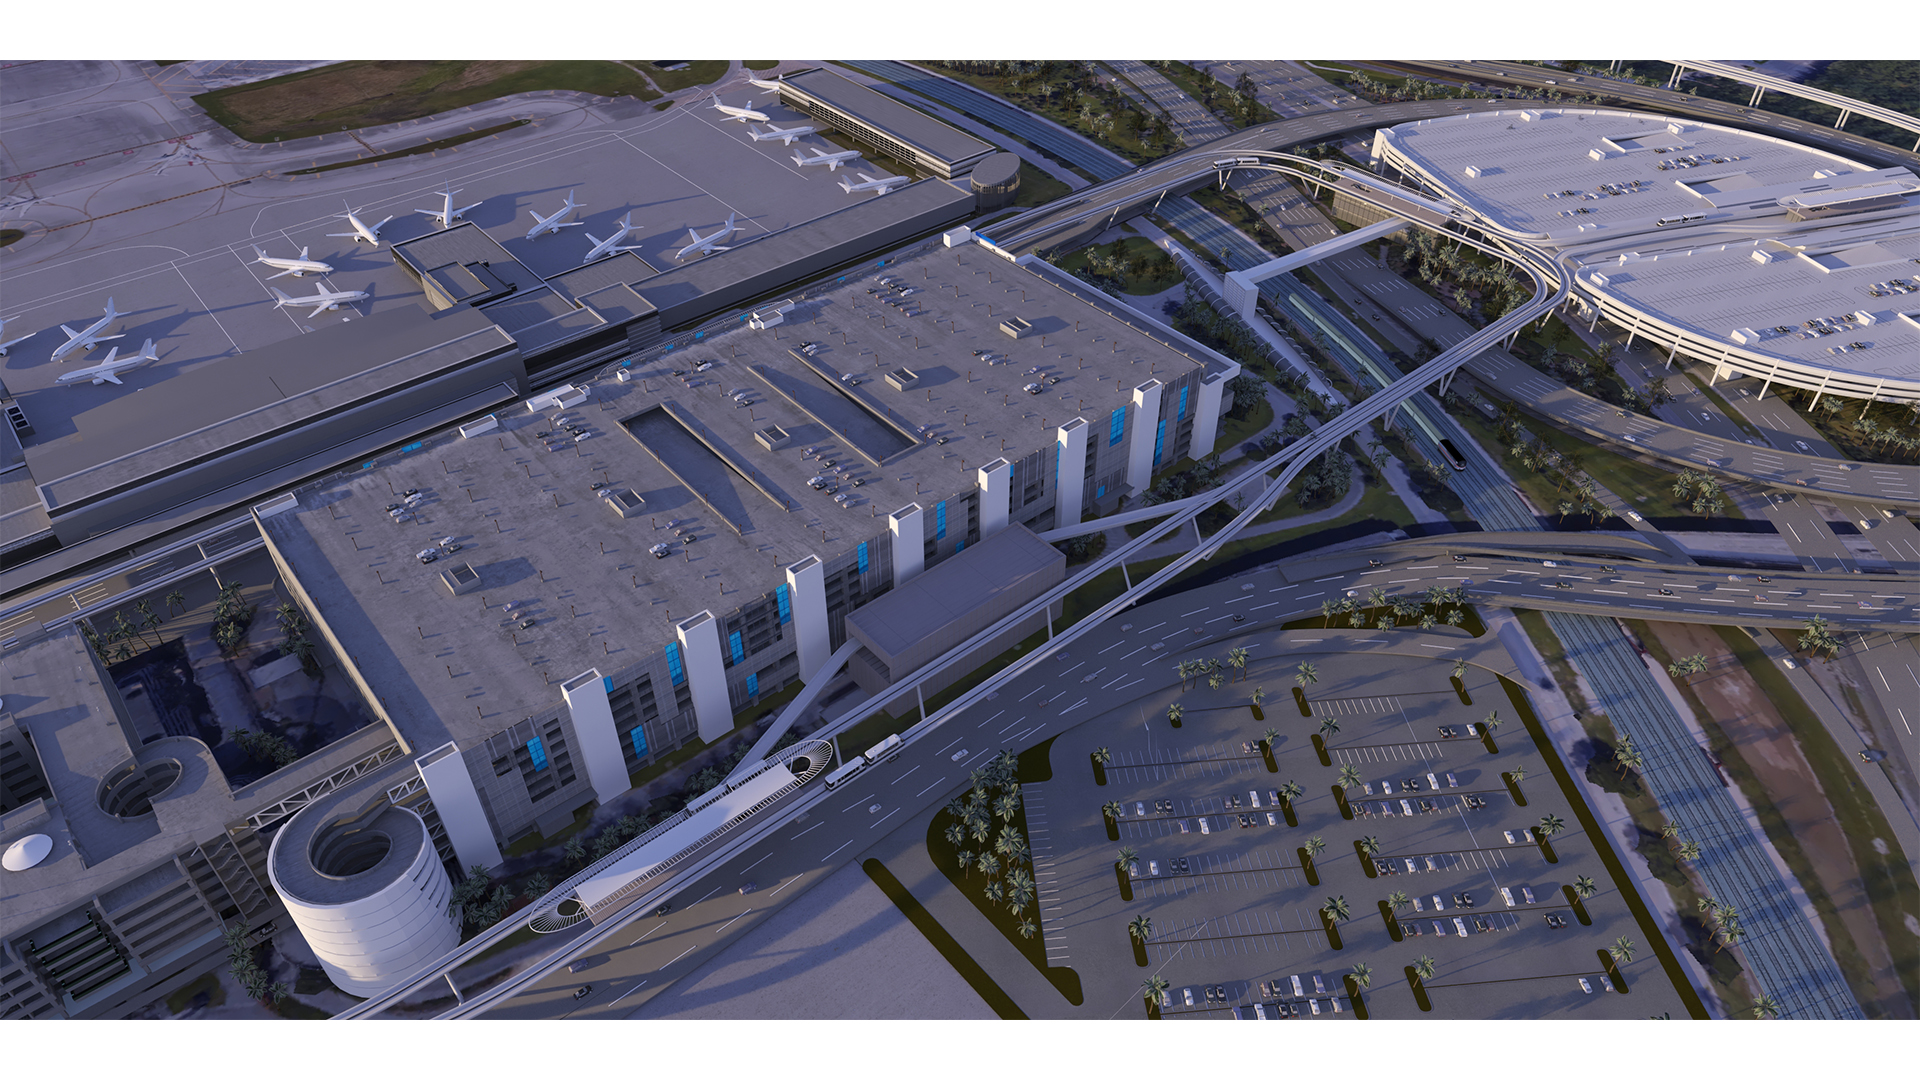 IMD_Rendering_Aviation_FLL_47_APM_End_Airport.jpg